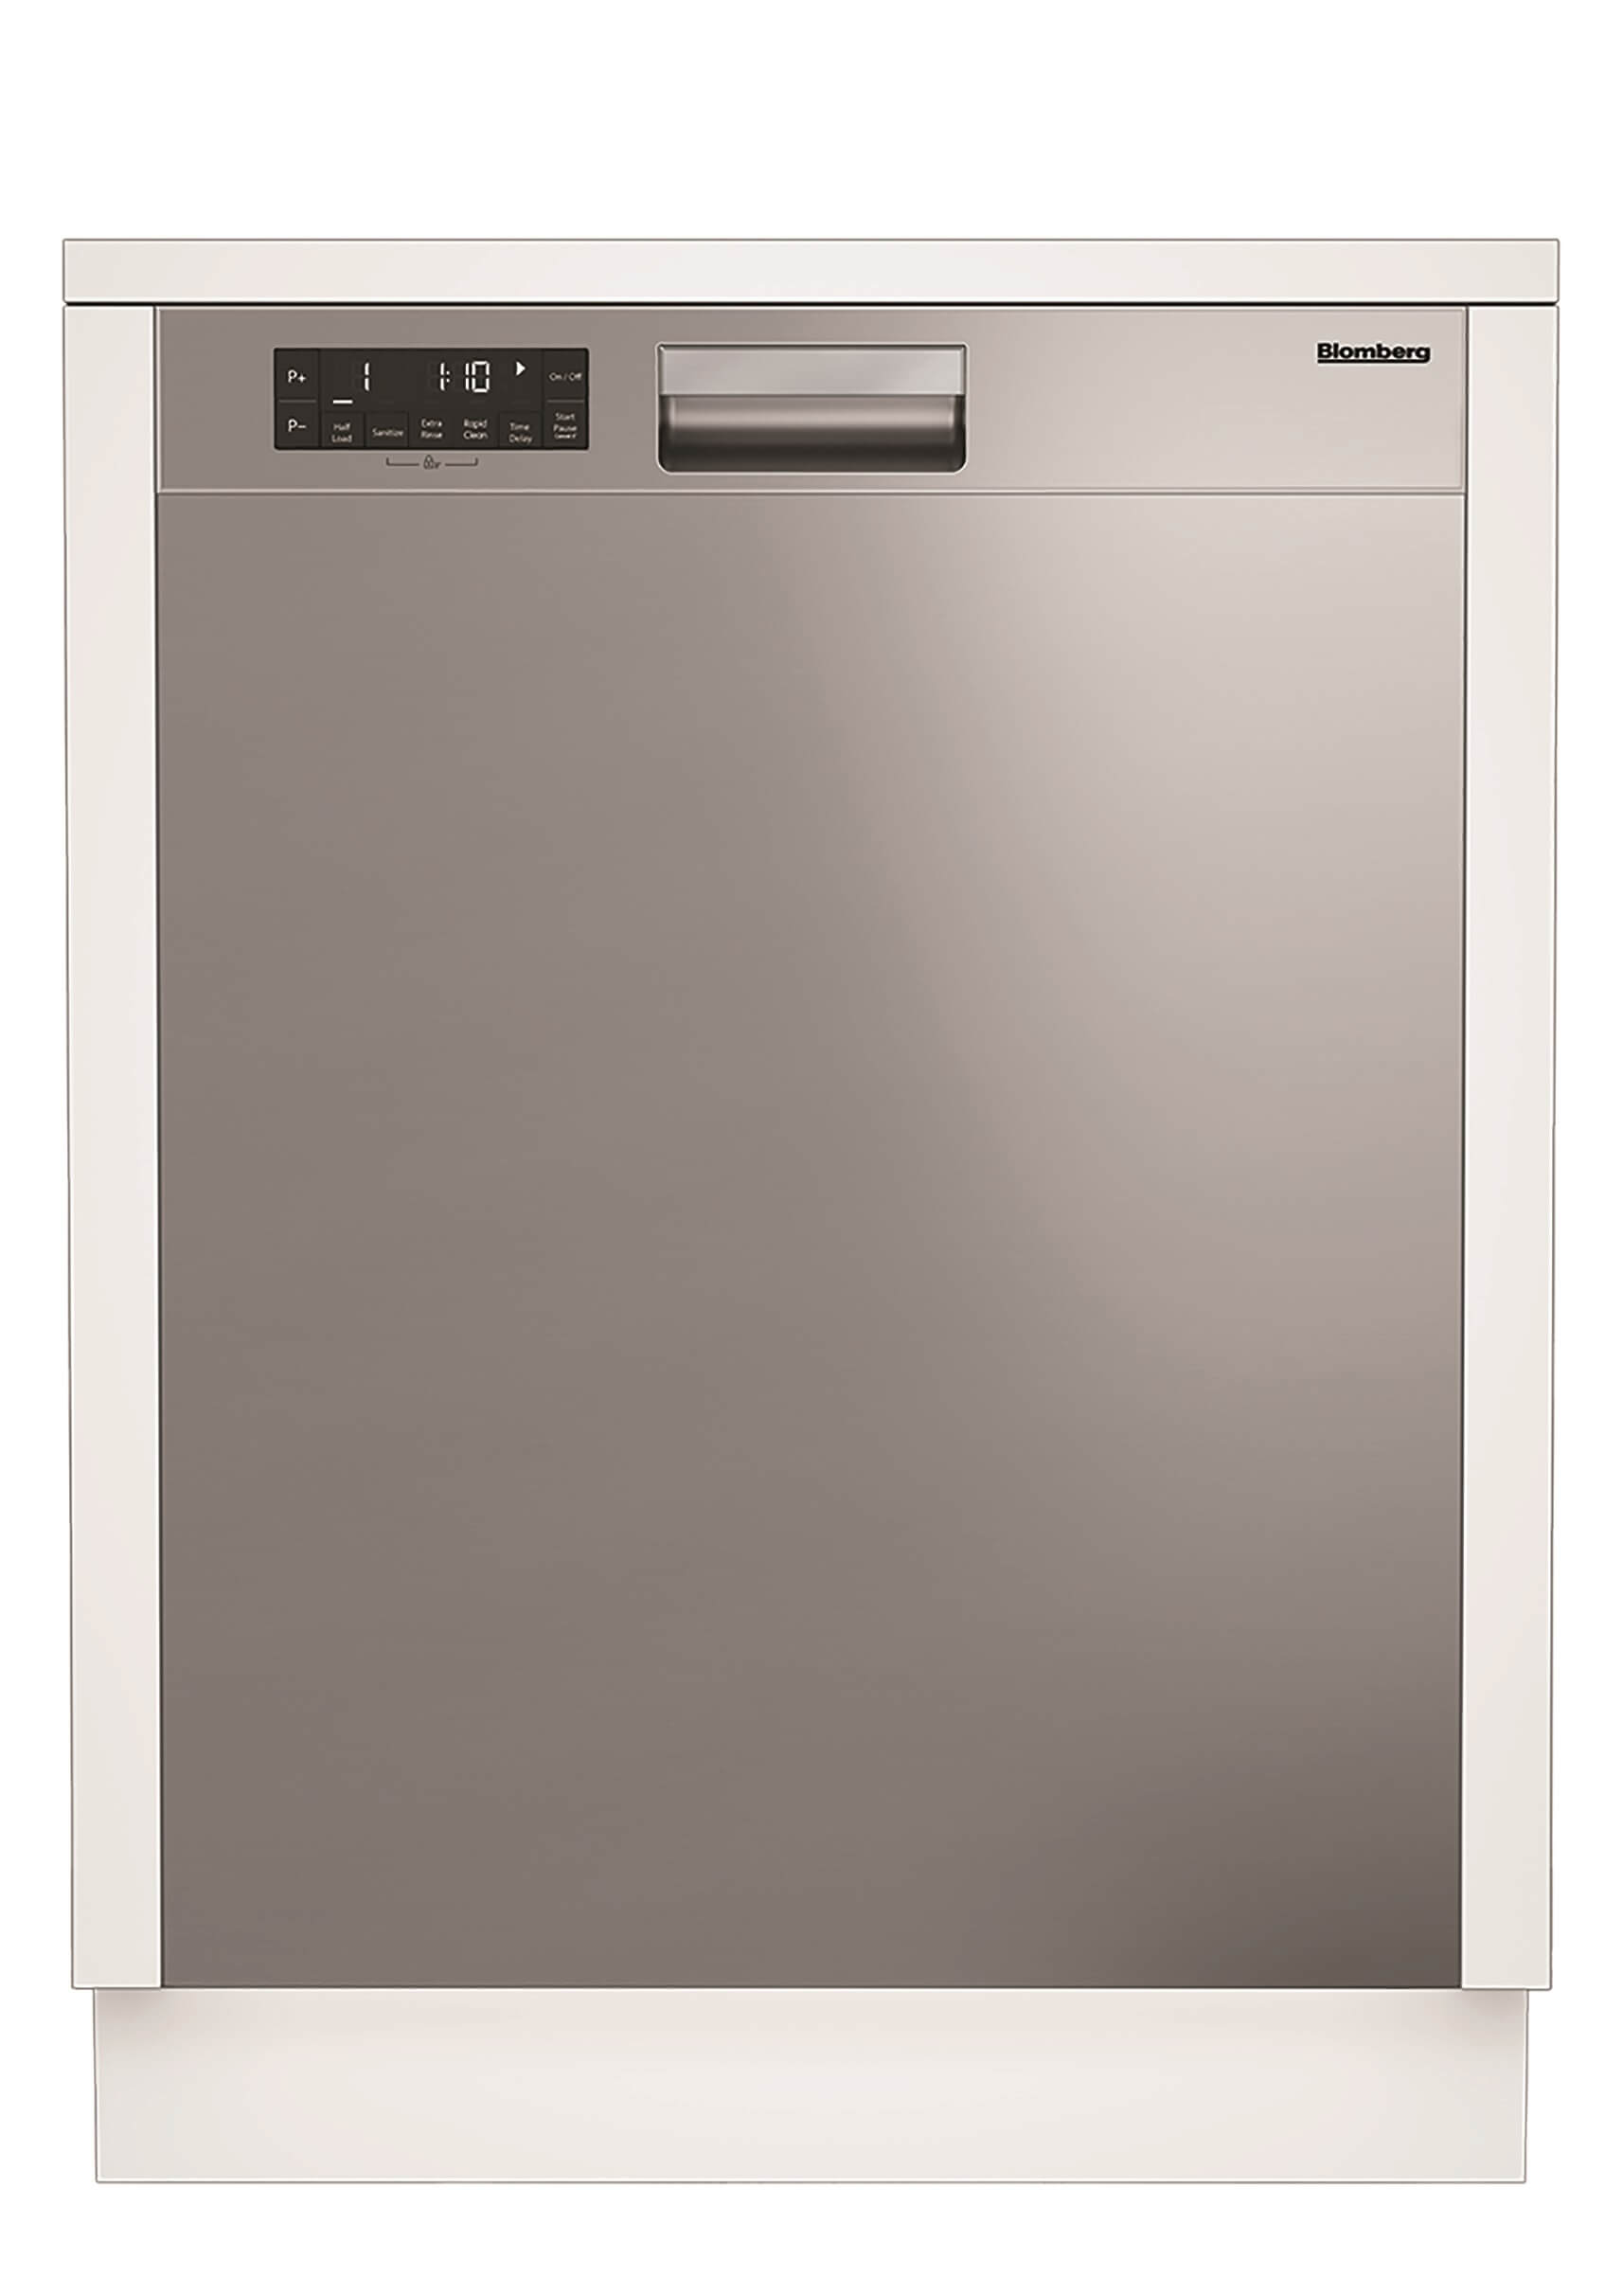 Blomberg Dishwasher DWT25504SS in Stainless Steel color showcased by Corbeil Electro Store